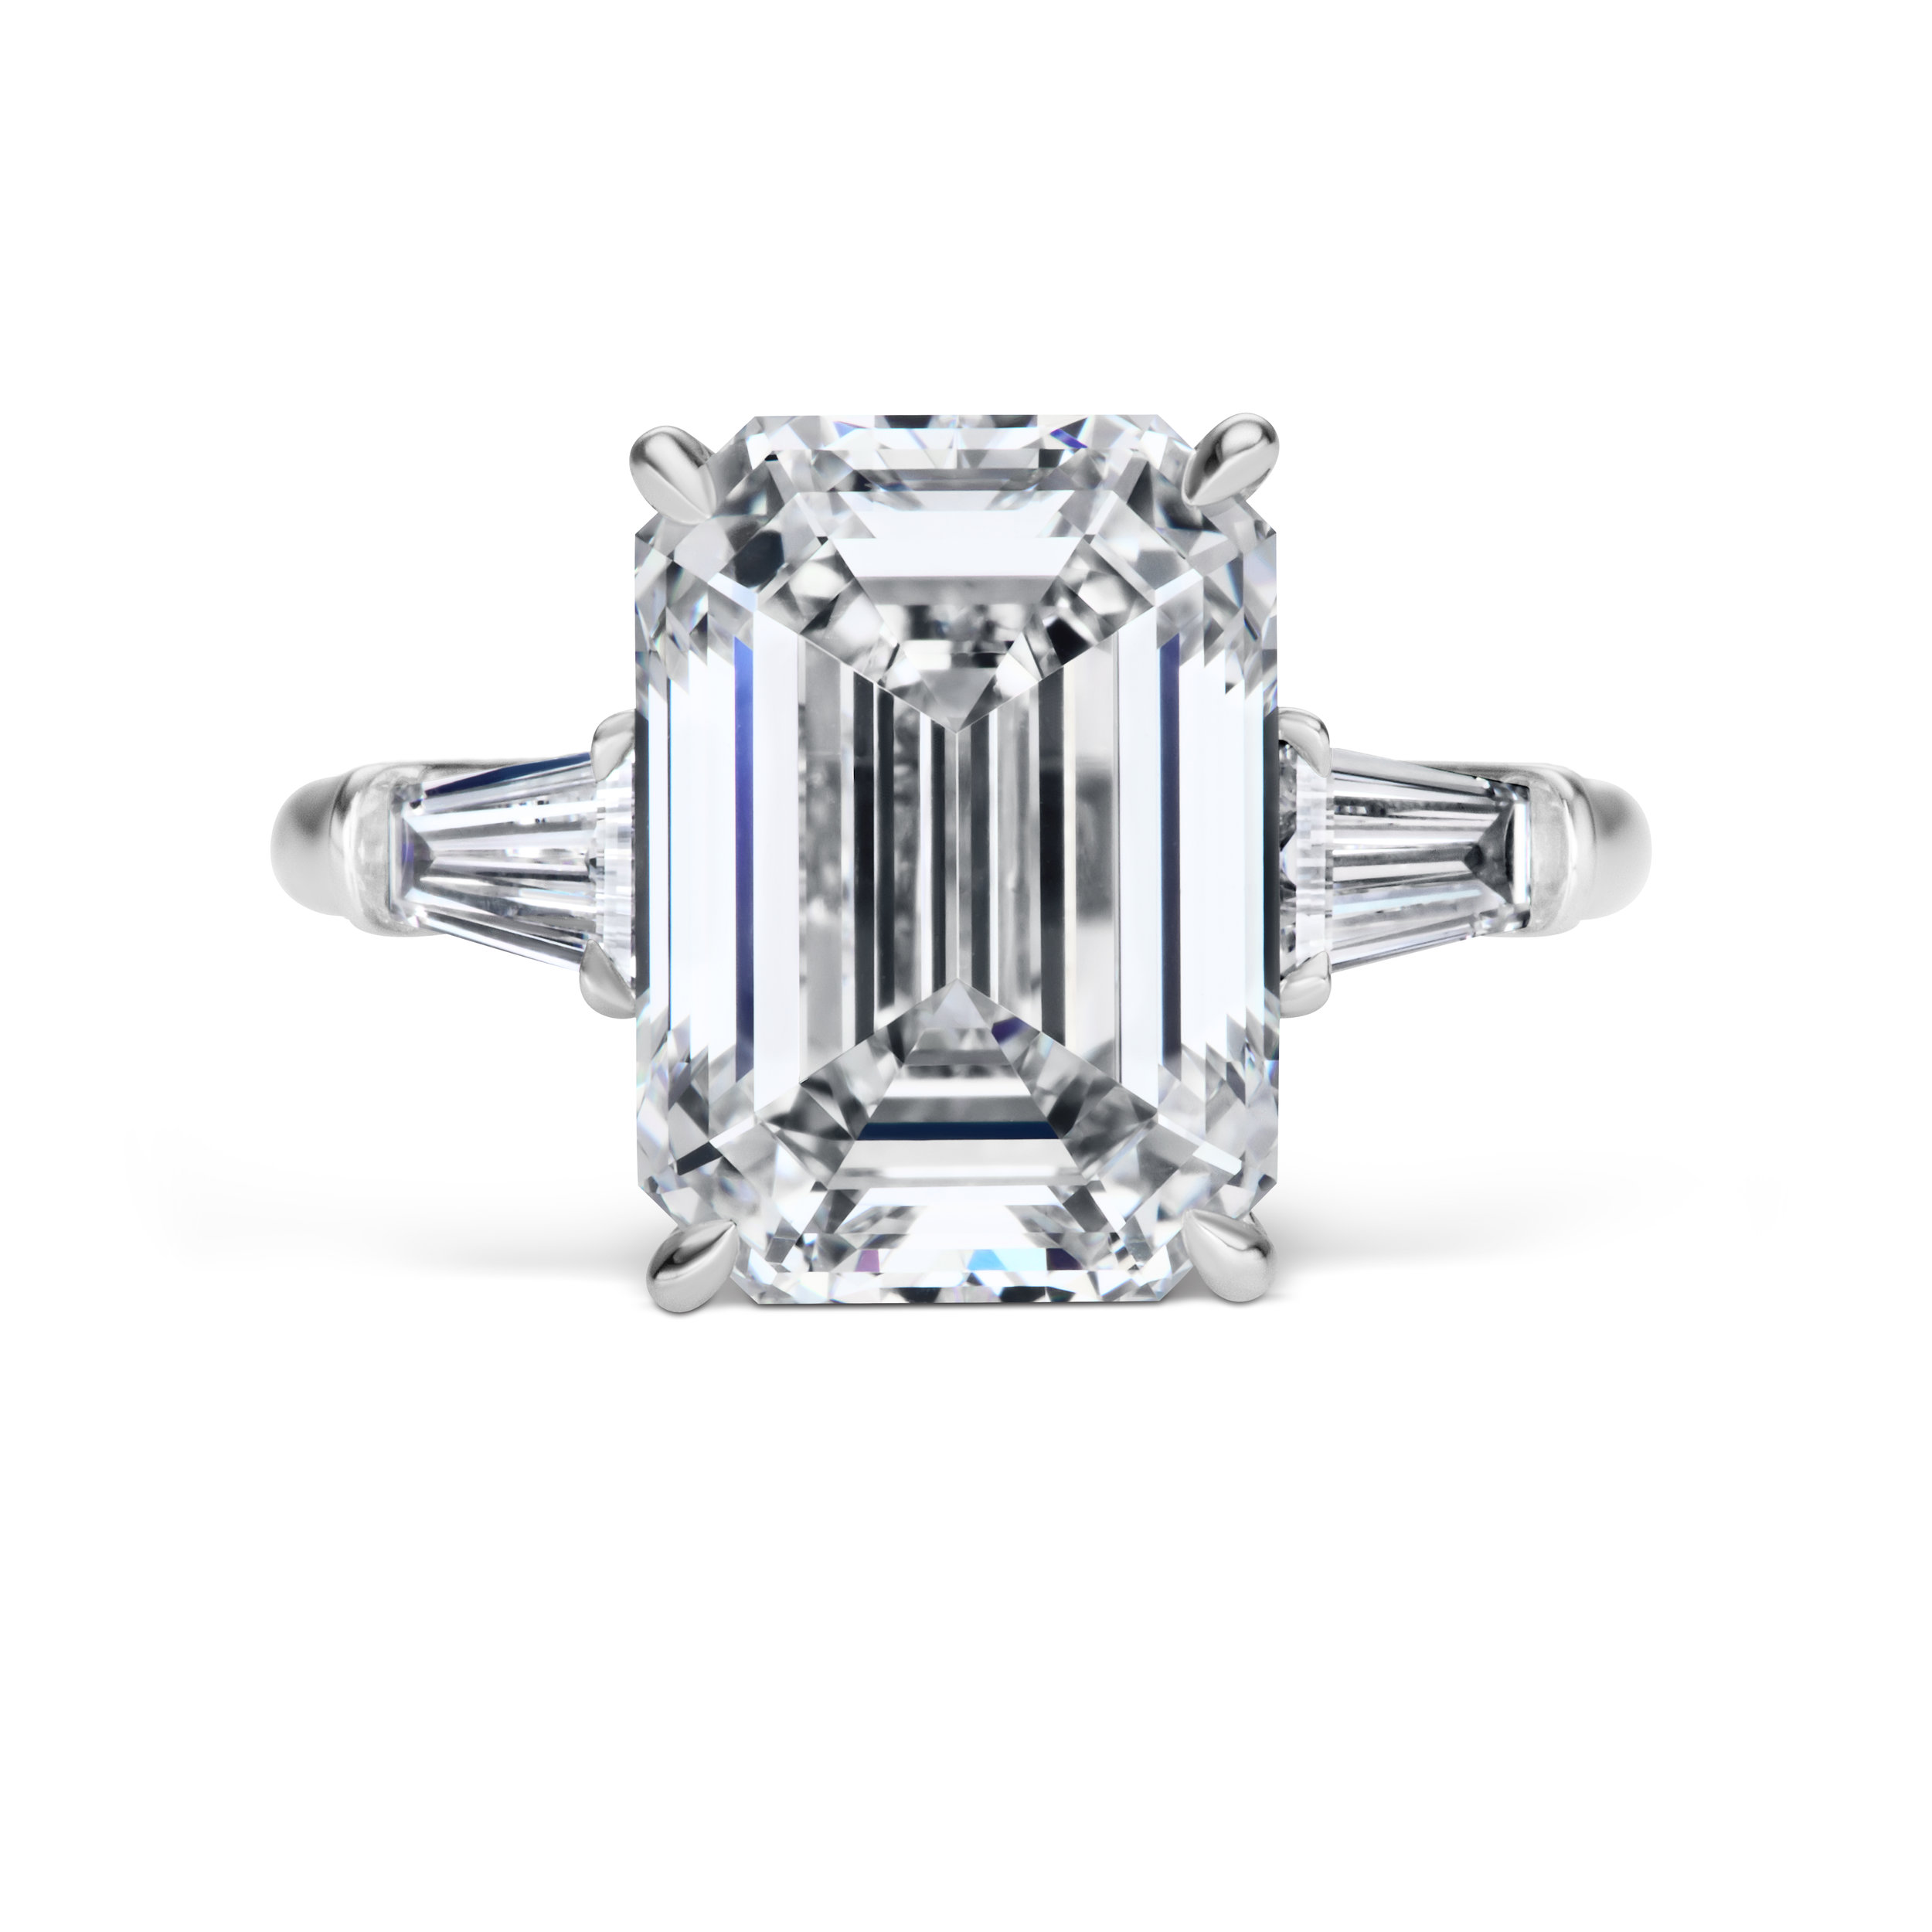 Emerald cut diamond ring with tapered baguettes, mounted in platinum.